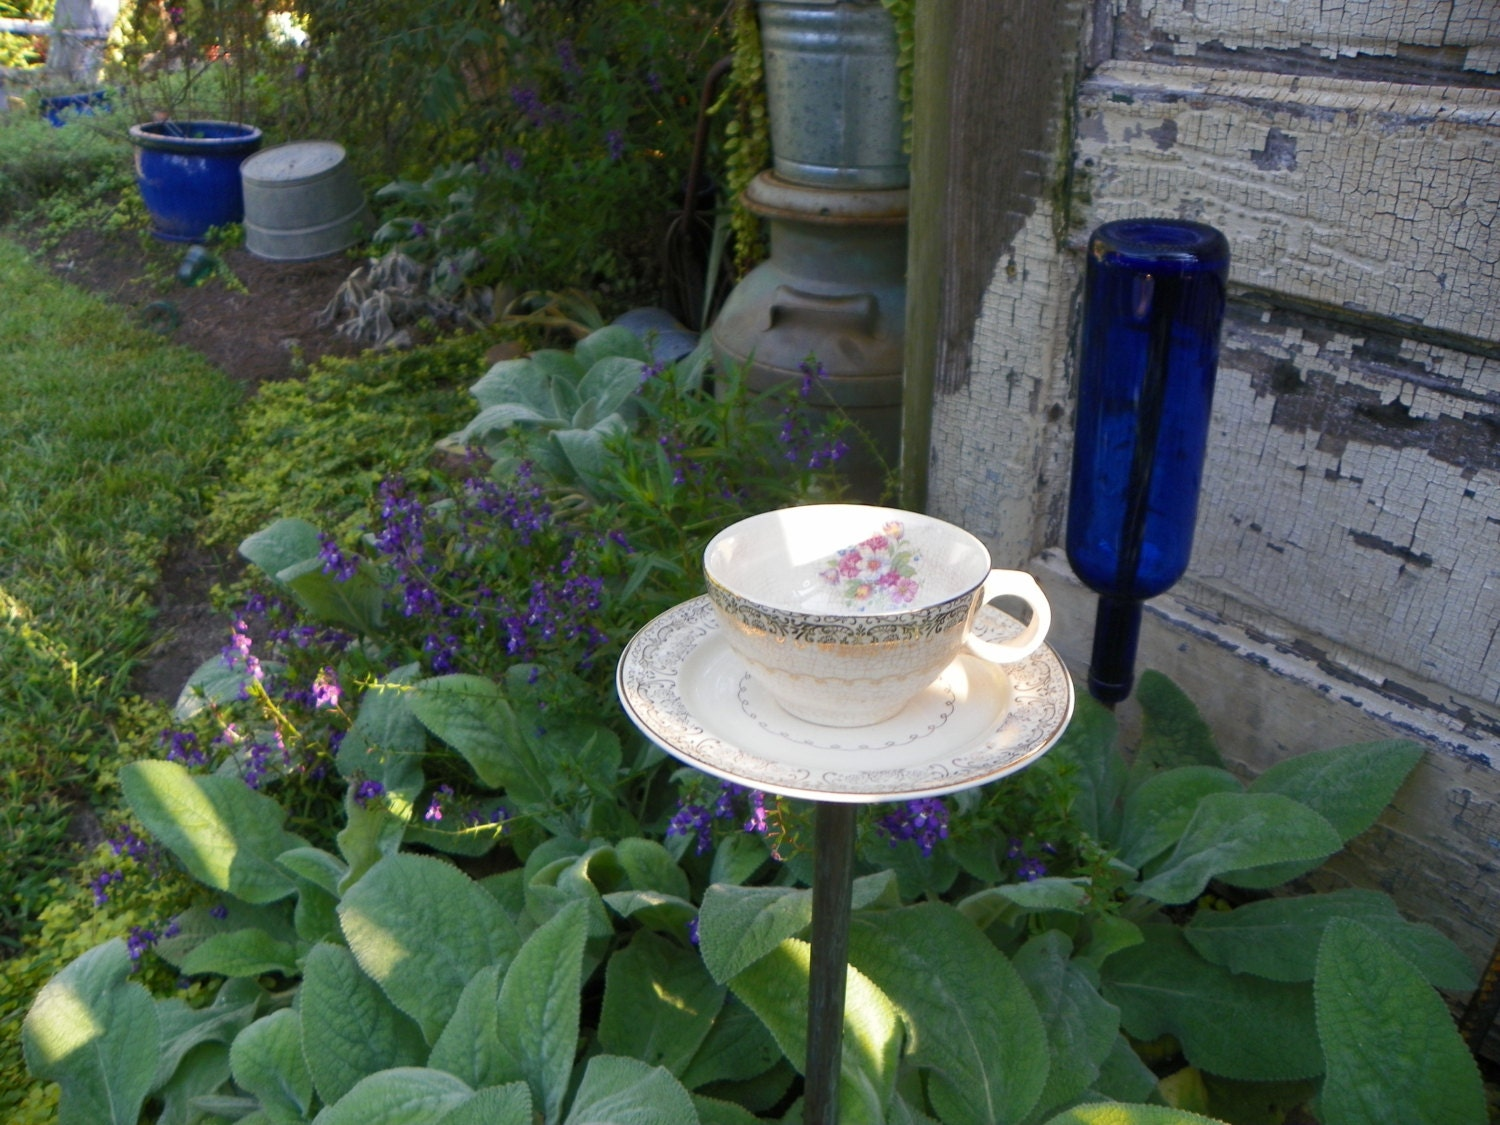 Bird feeder tea cup upcycled garden decor by jejepoppysshed for Upcycled yard decor